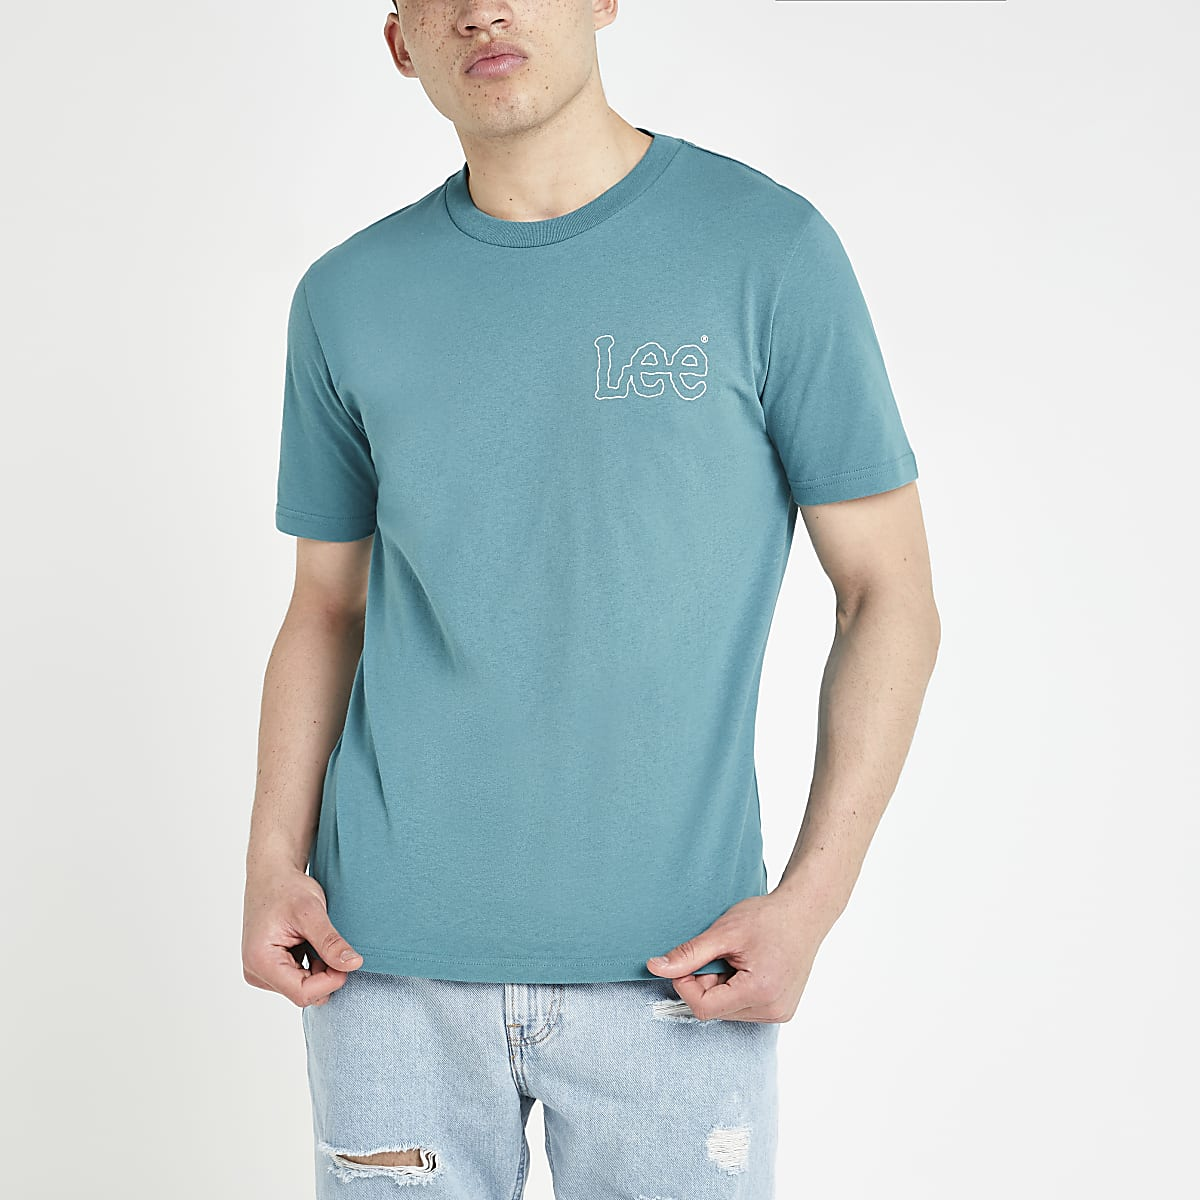 Lee blue logo print T-shirt